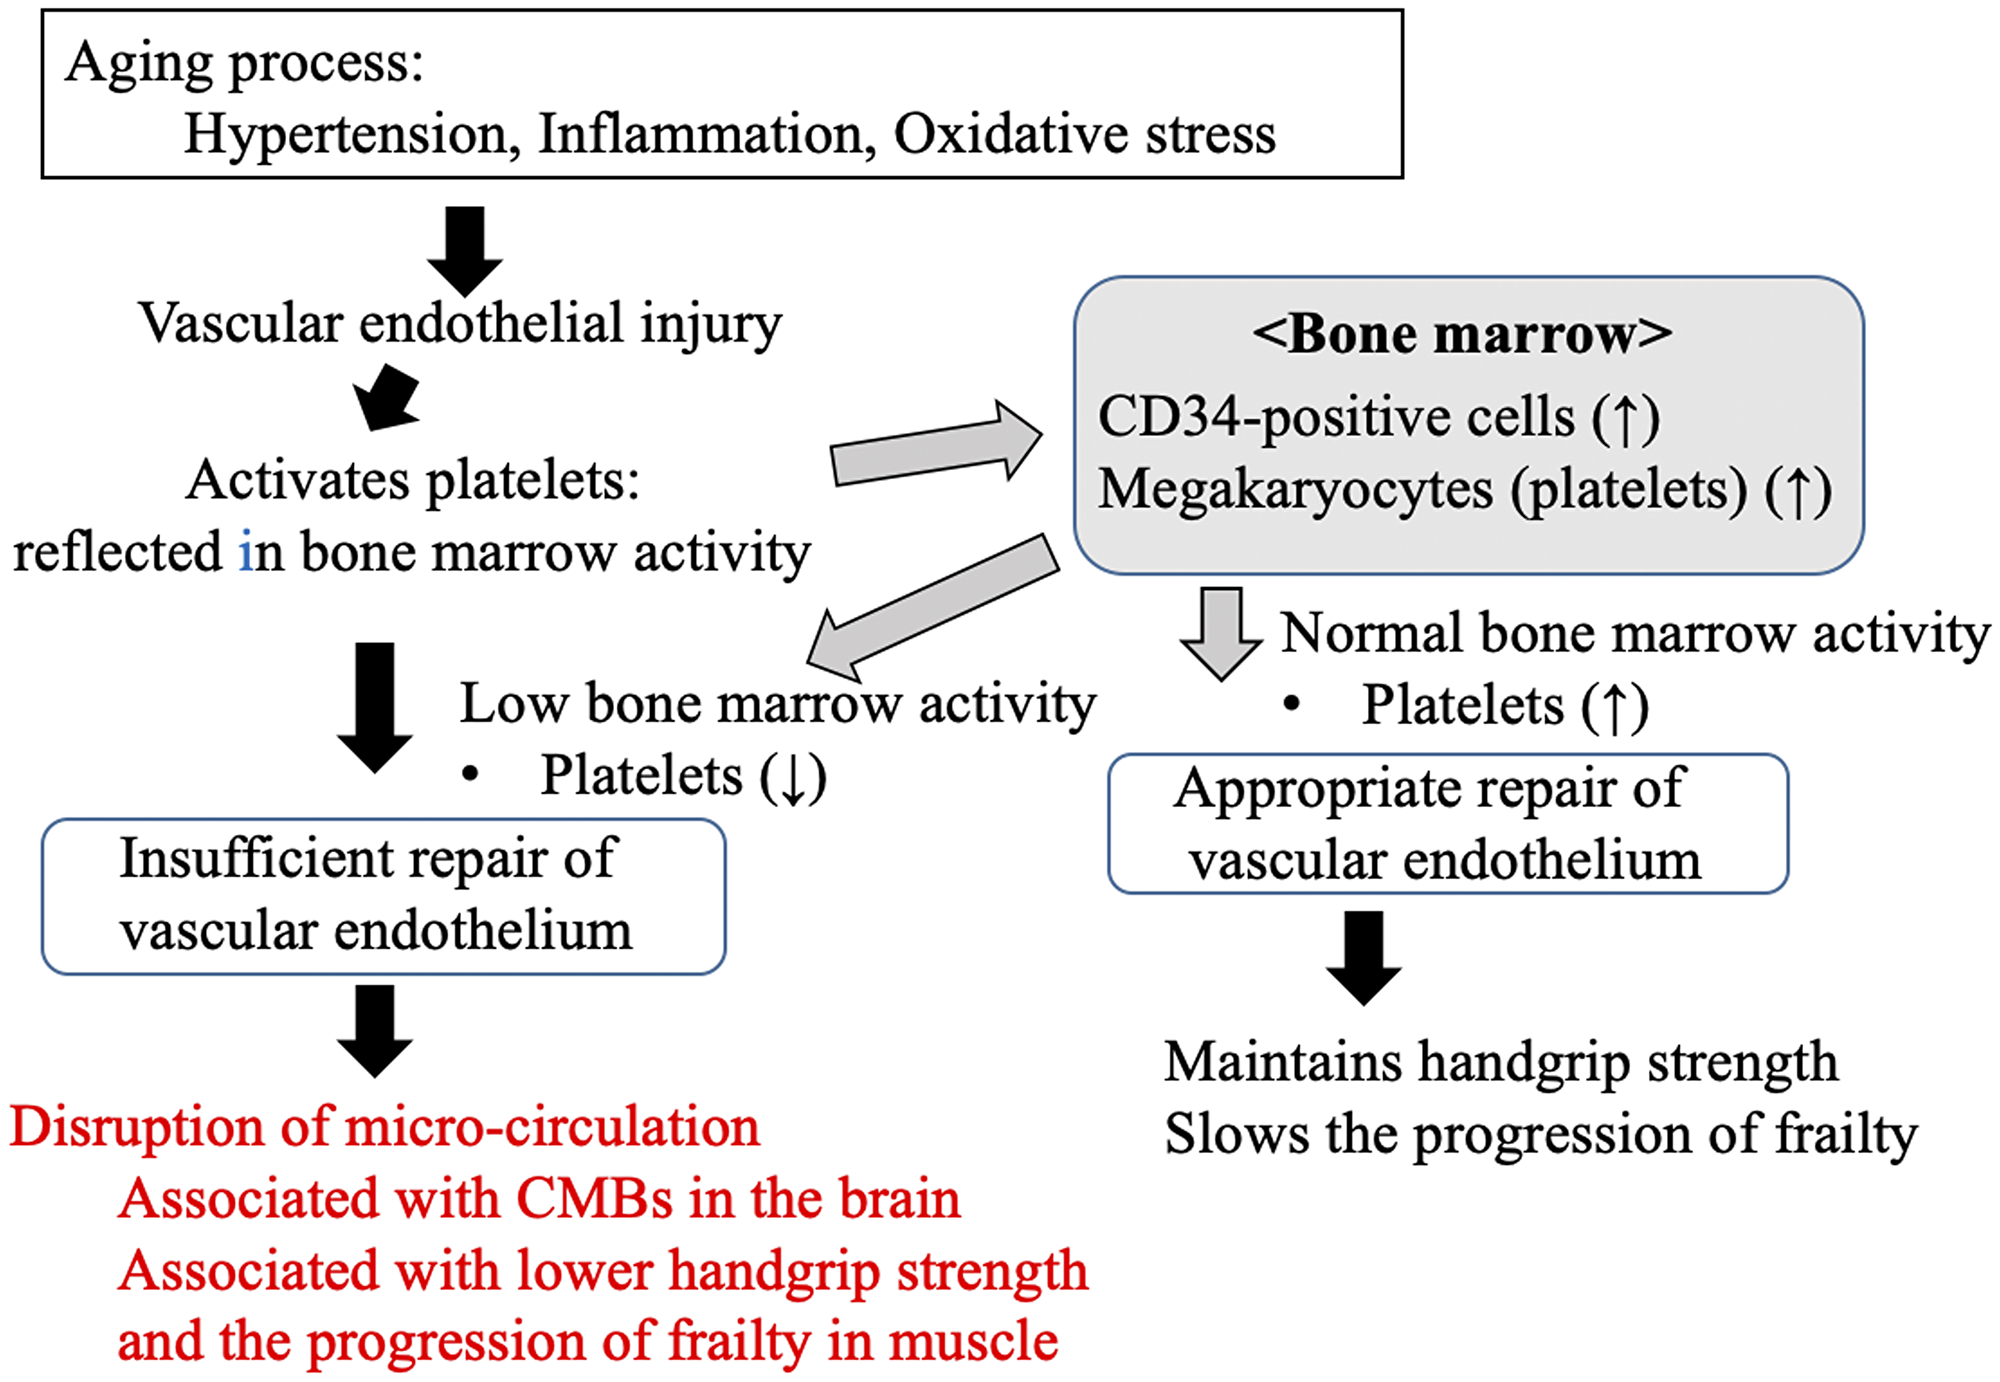 Possible mechanism underlying the links between the progression of frailty, handgrip strength, cerebral microbleeds, and platelet count, as an index of endothelial repair capability, in older people in the present study.